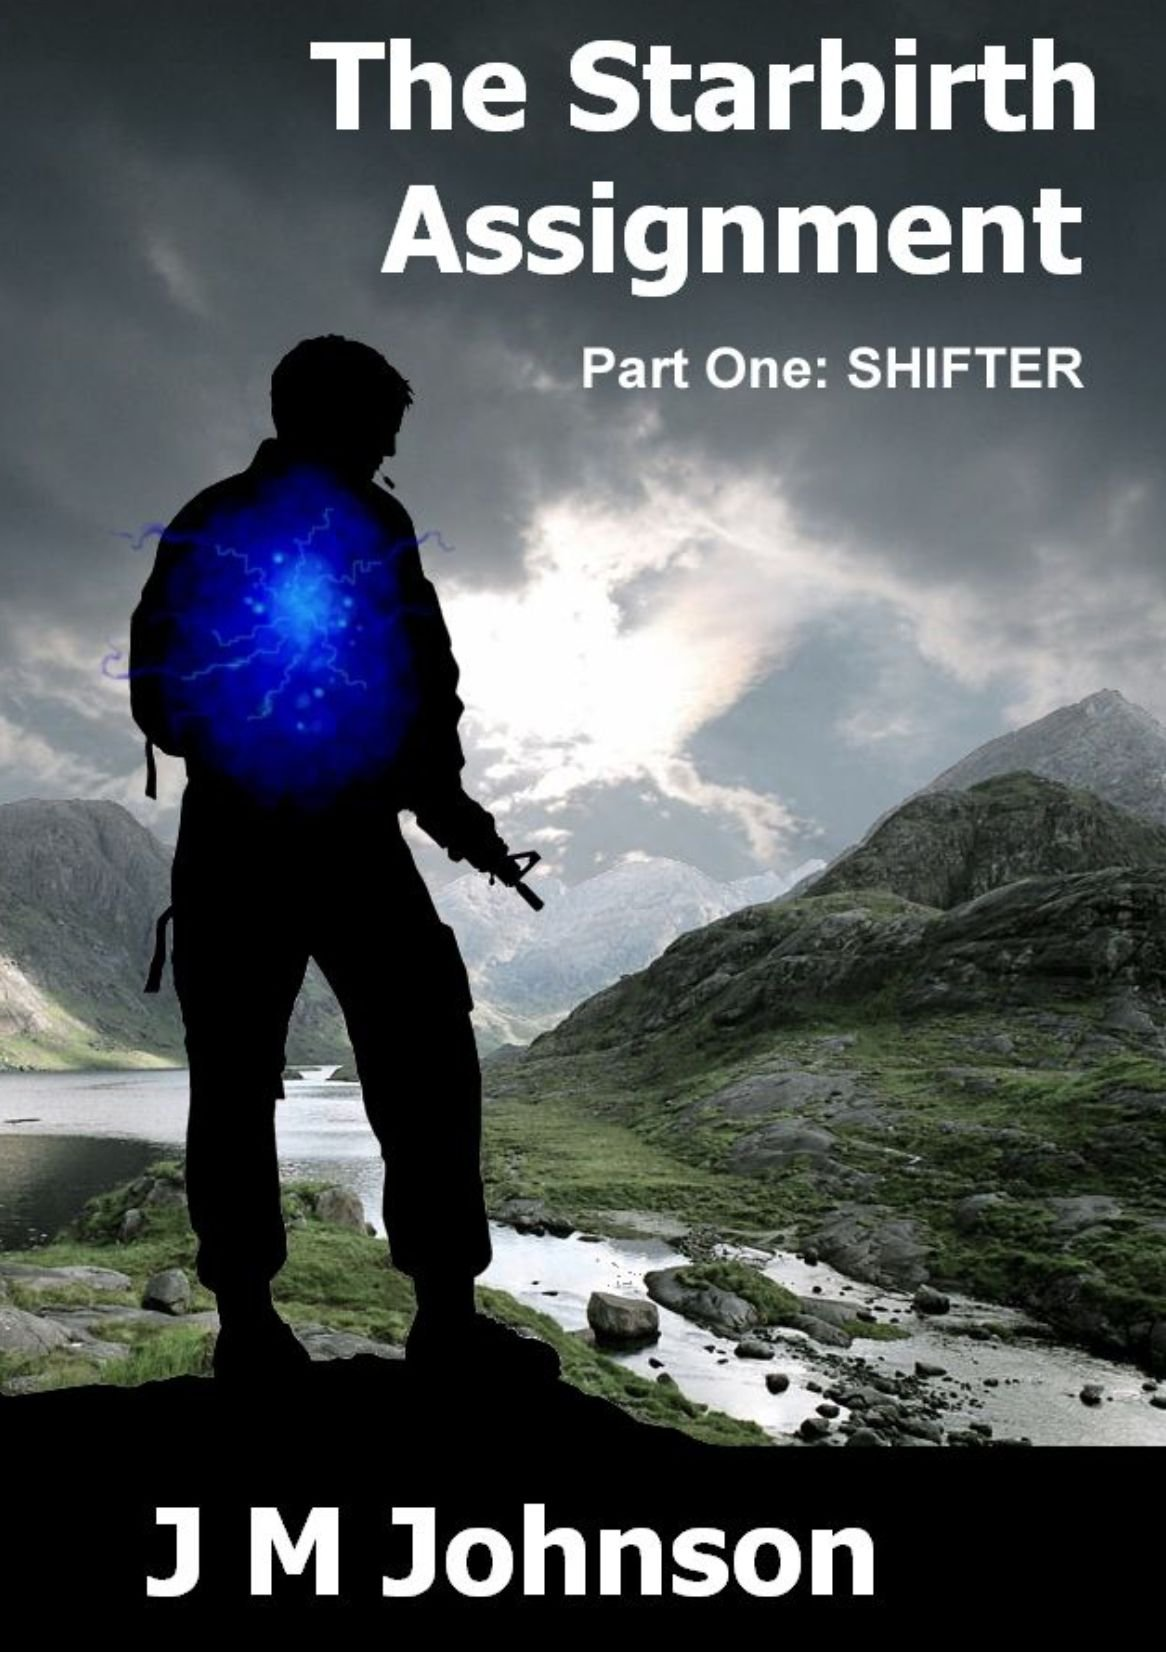 The Starbirth Assignment Part One: SHIFTER: J M Johnson: 9781470997939:  Books - Amazon.ca